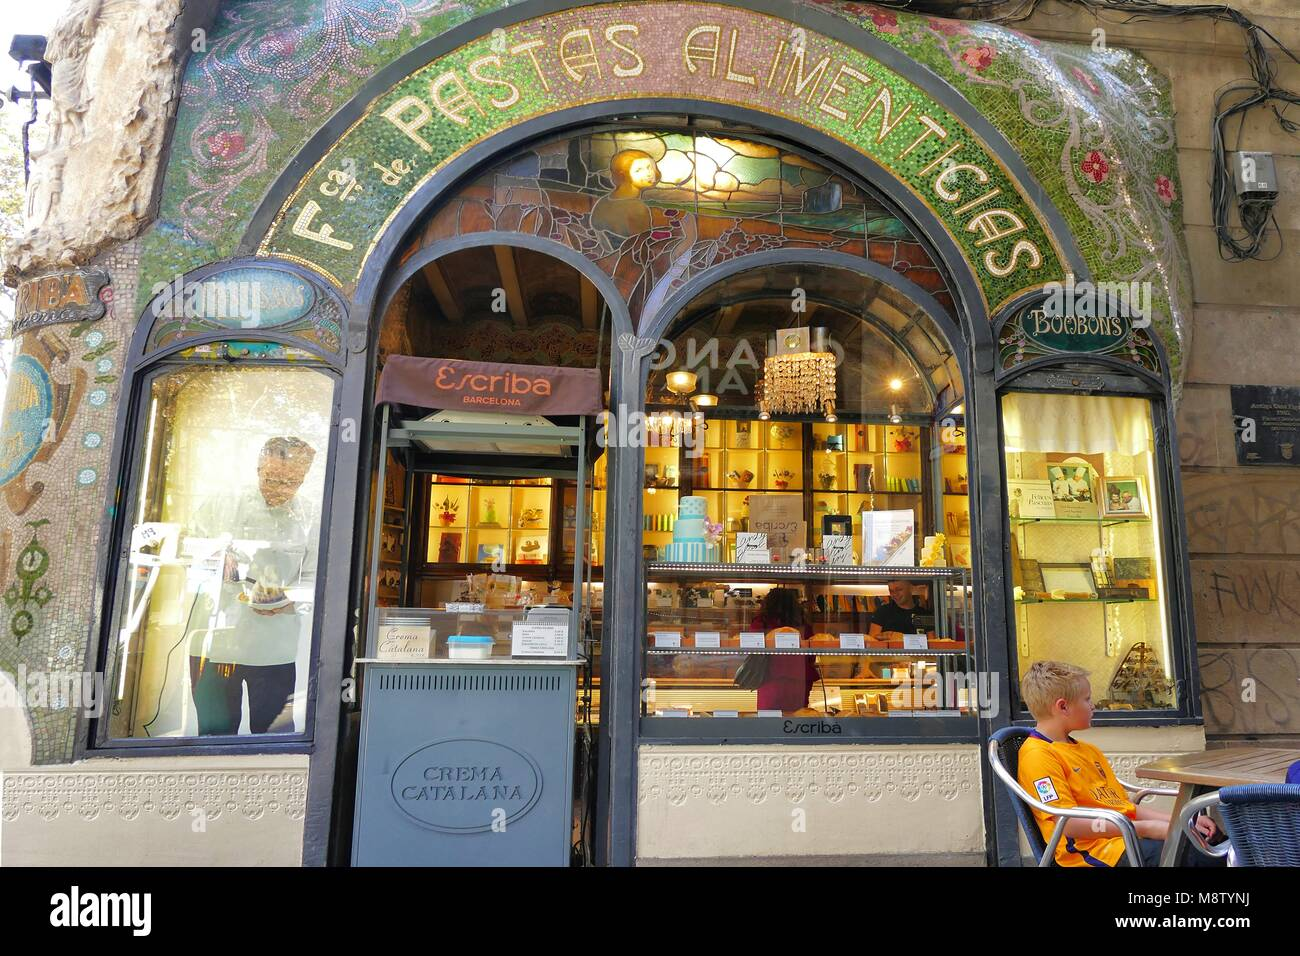 Barcelona Catalunya circa November 2016 The famous historic pastry shop Escriba on la Rambla exterior view - Stock Image